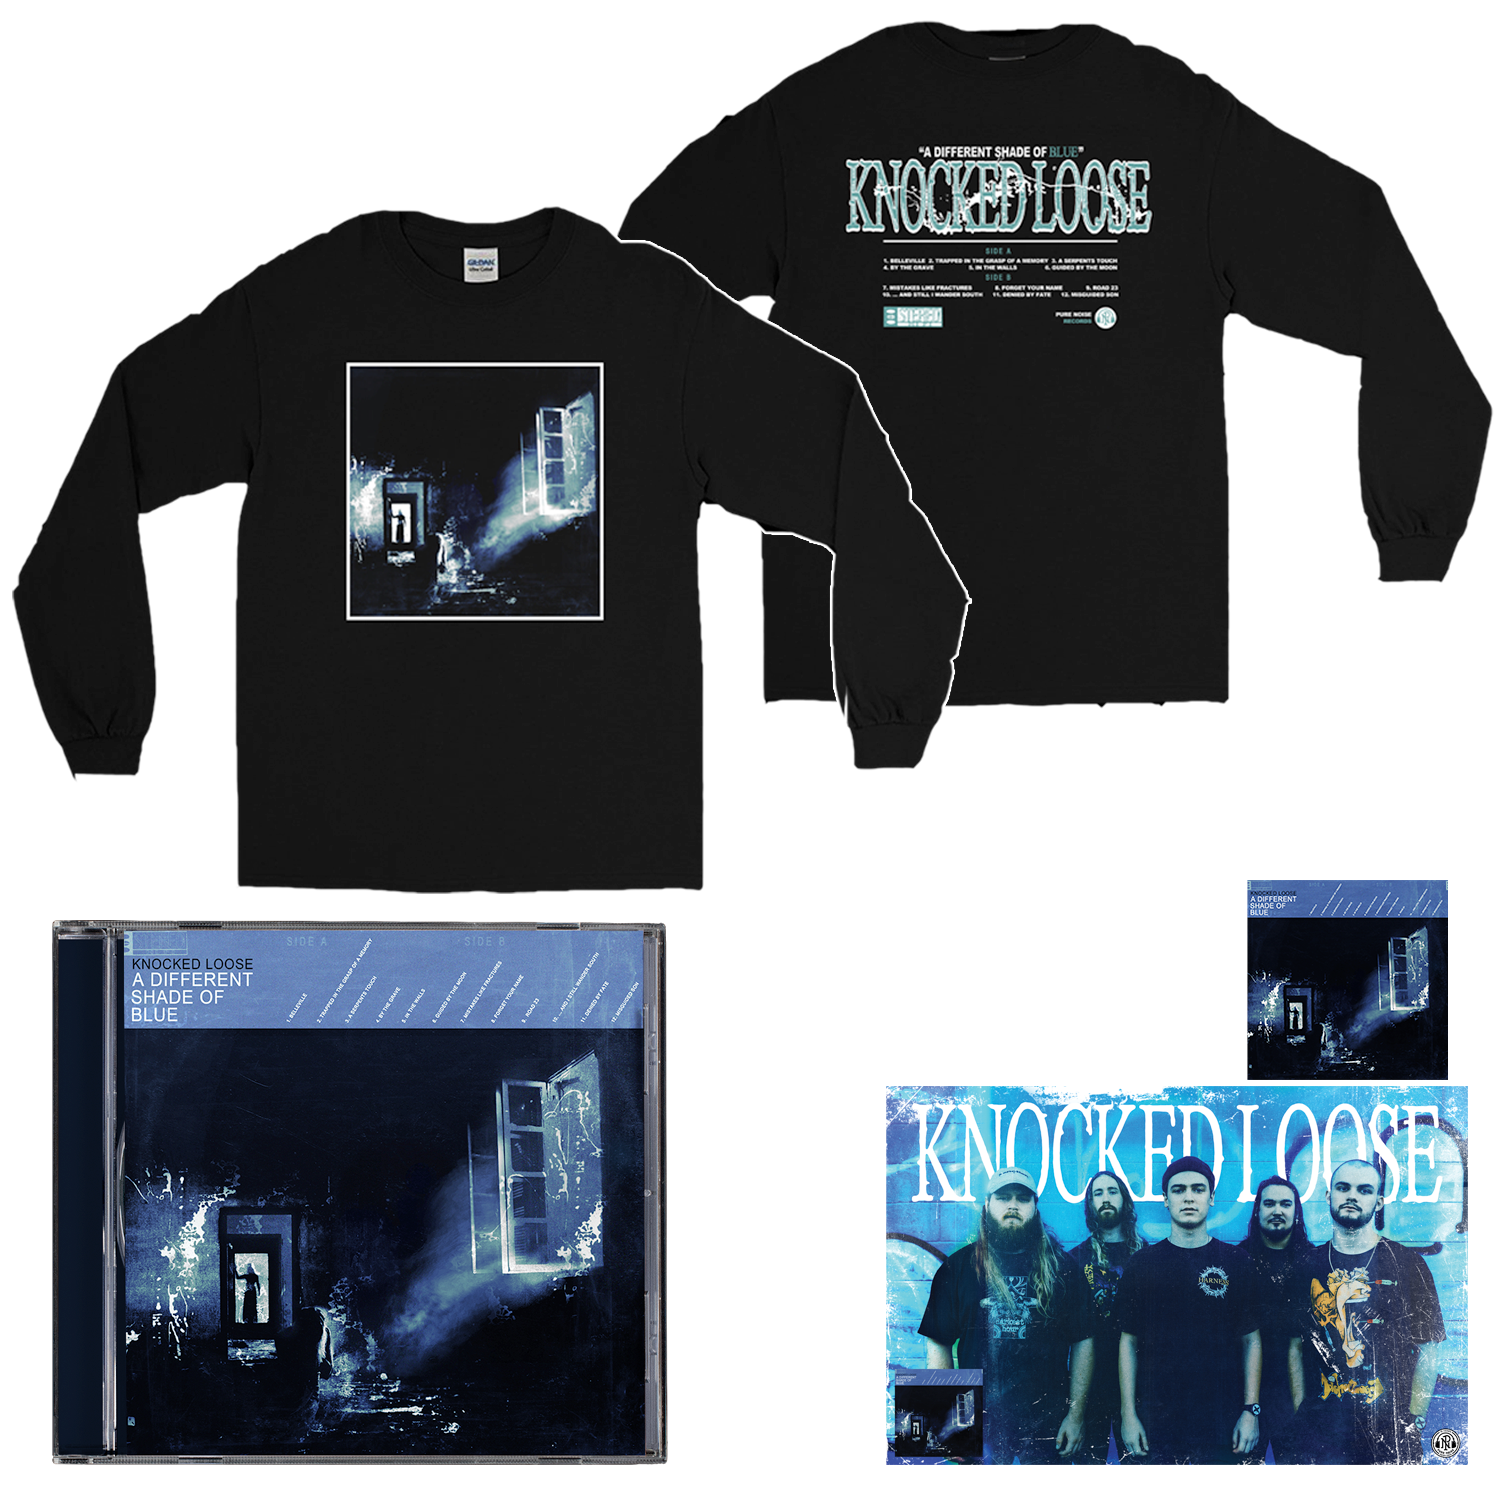 Knocked Loose 'A Different Shade of Blue' (CD + Long Sleeve + Poster + Sticker)